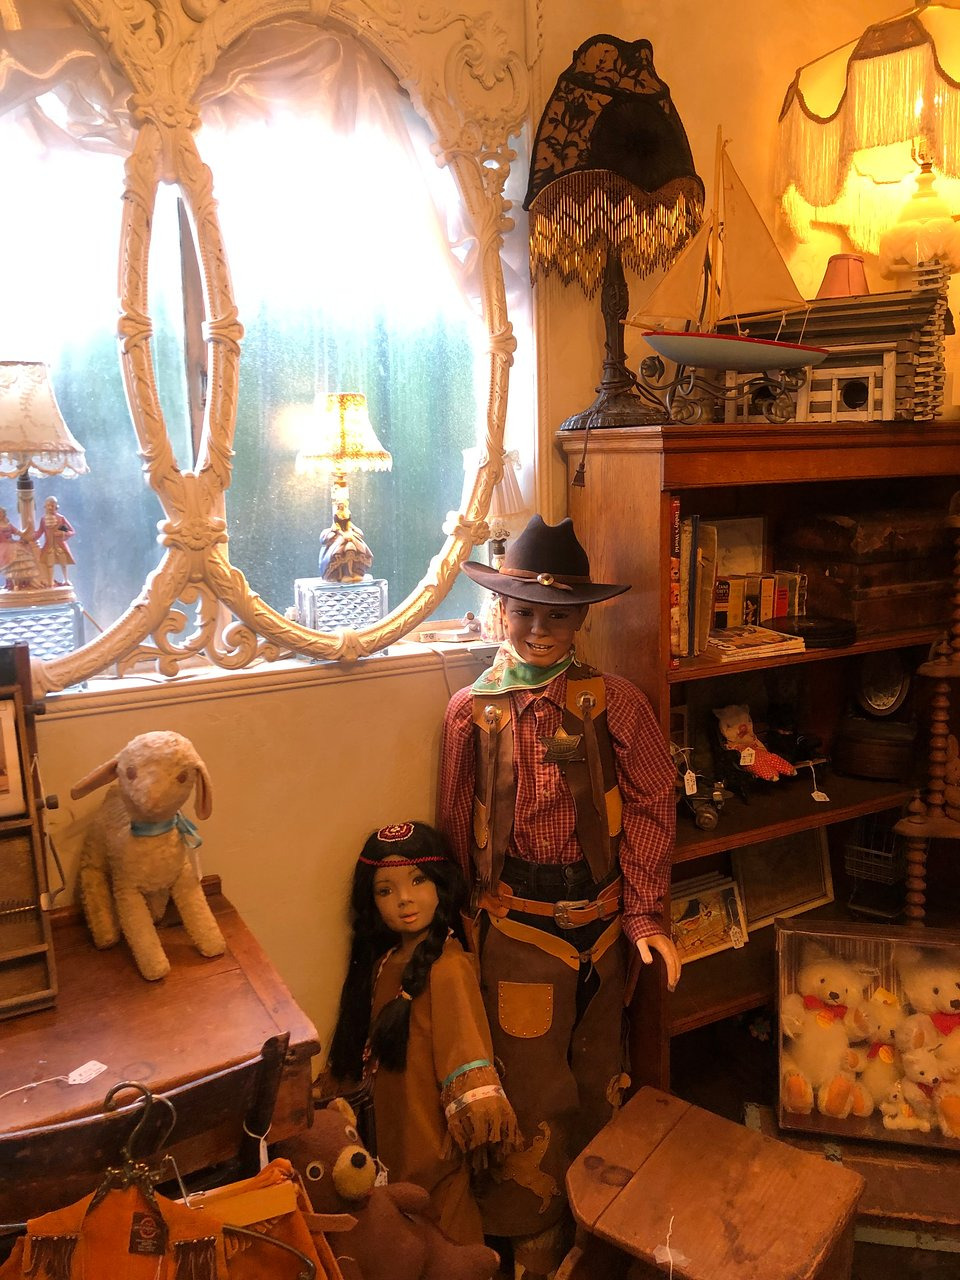 Antique Furniture Stores Las Vegas Beautiful Silver Horse Antiques Las Vegas 2020 All You Need to